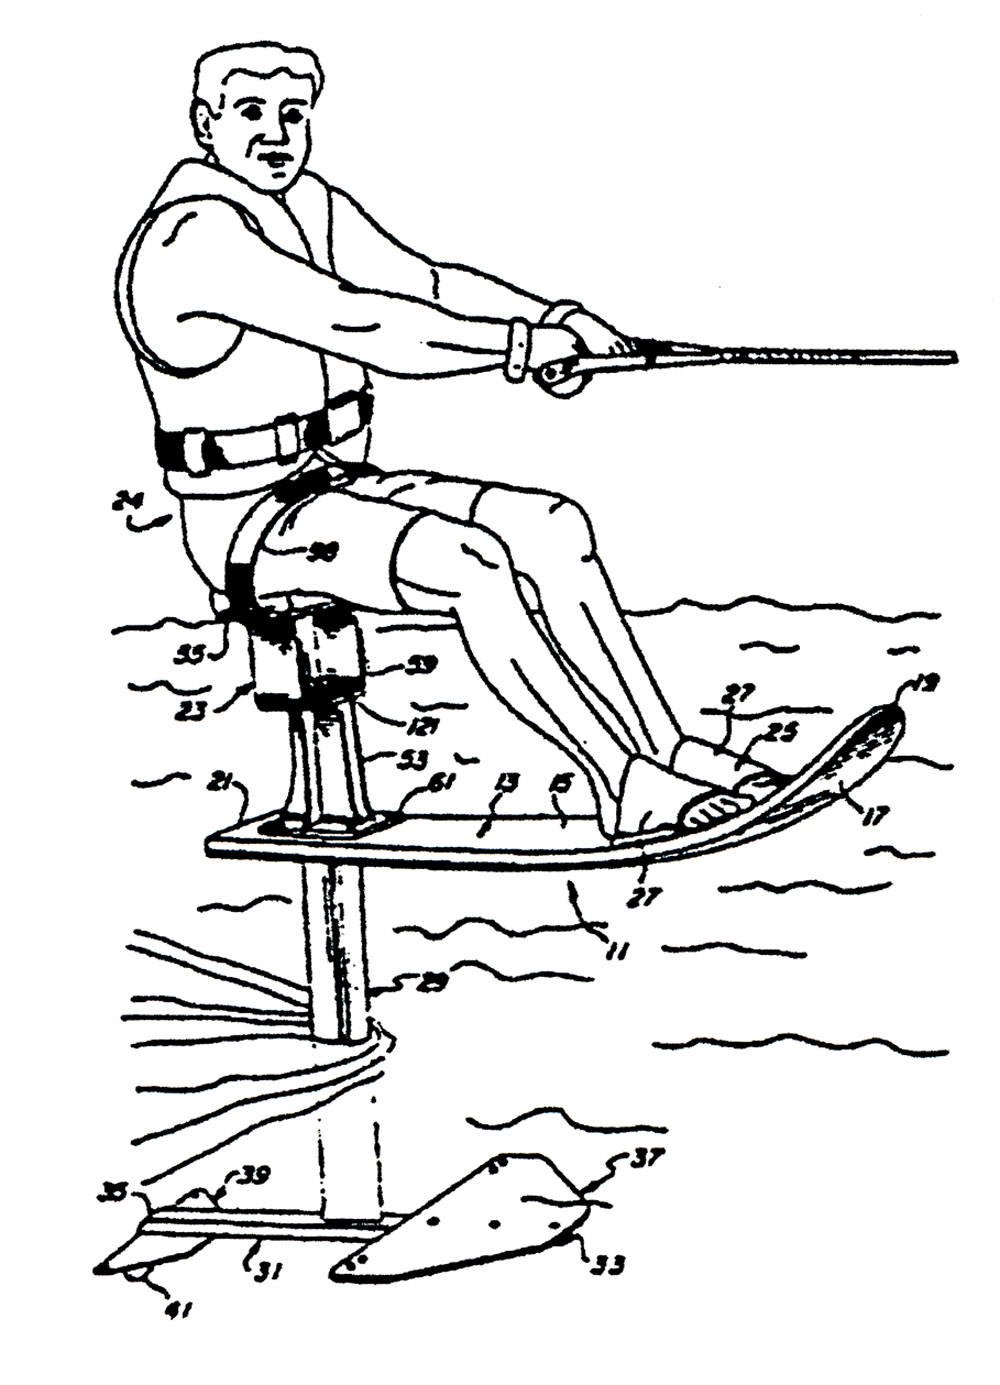 adventures-water-skiing-hydrofoiling-1989-patent-drawing